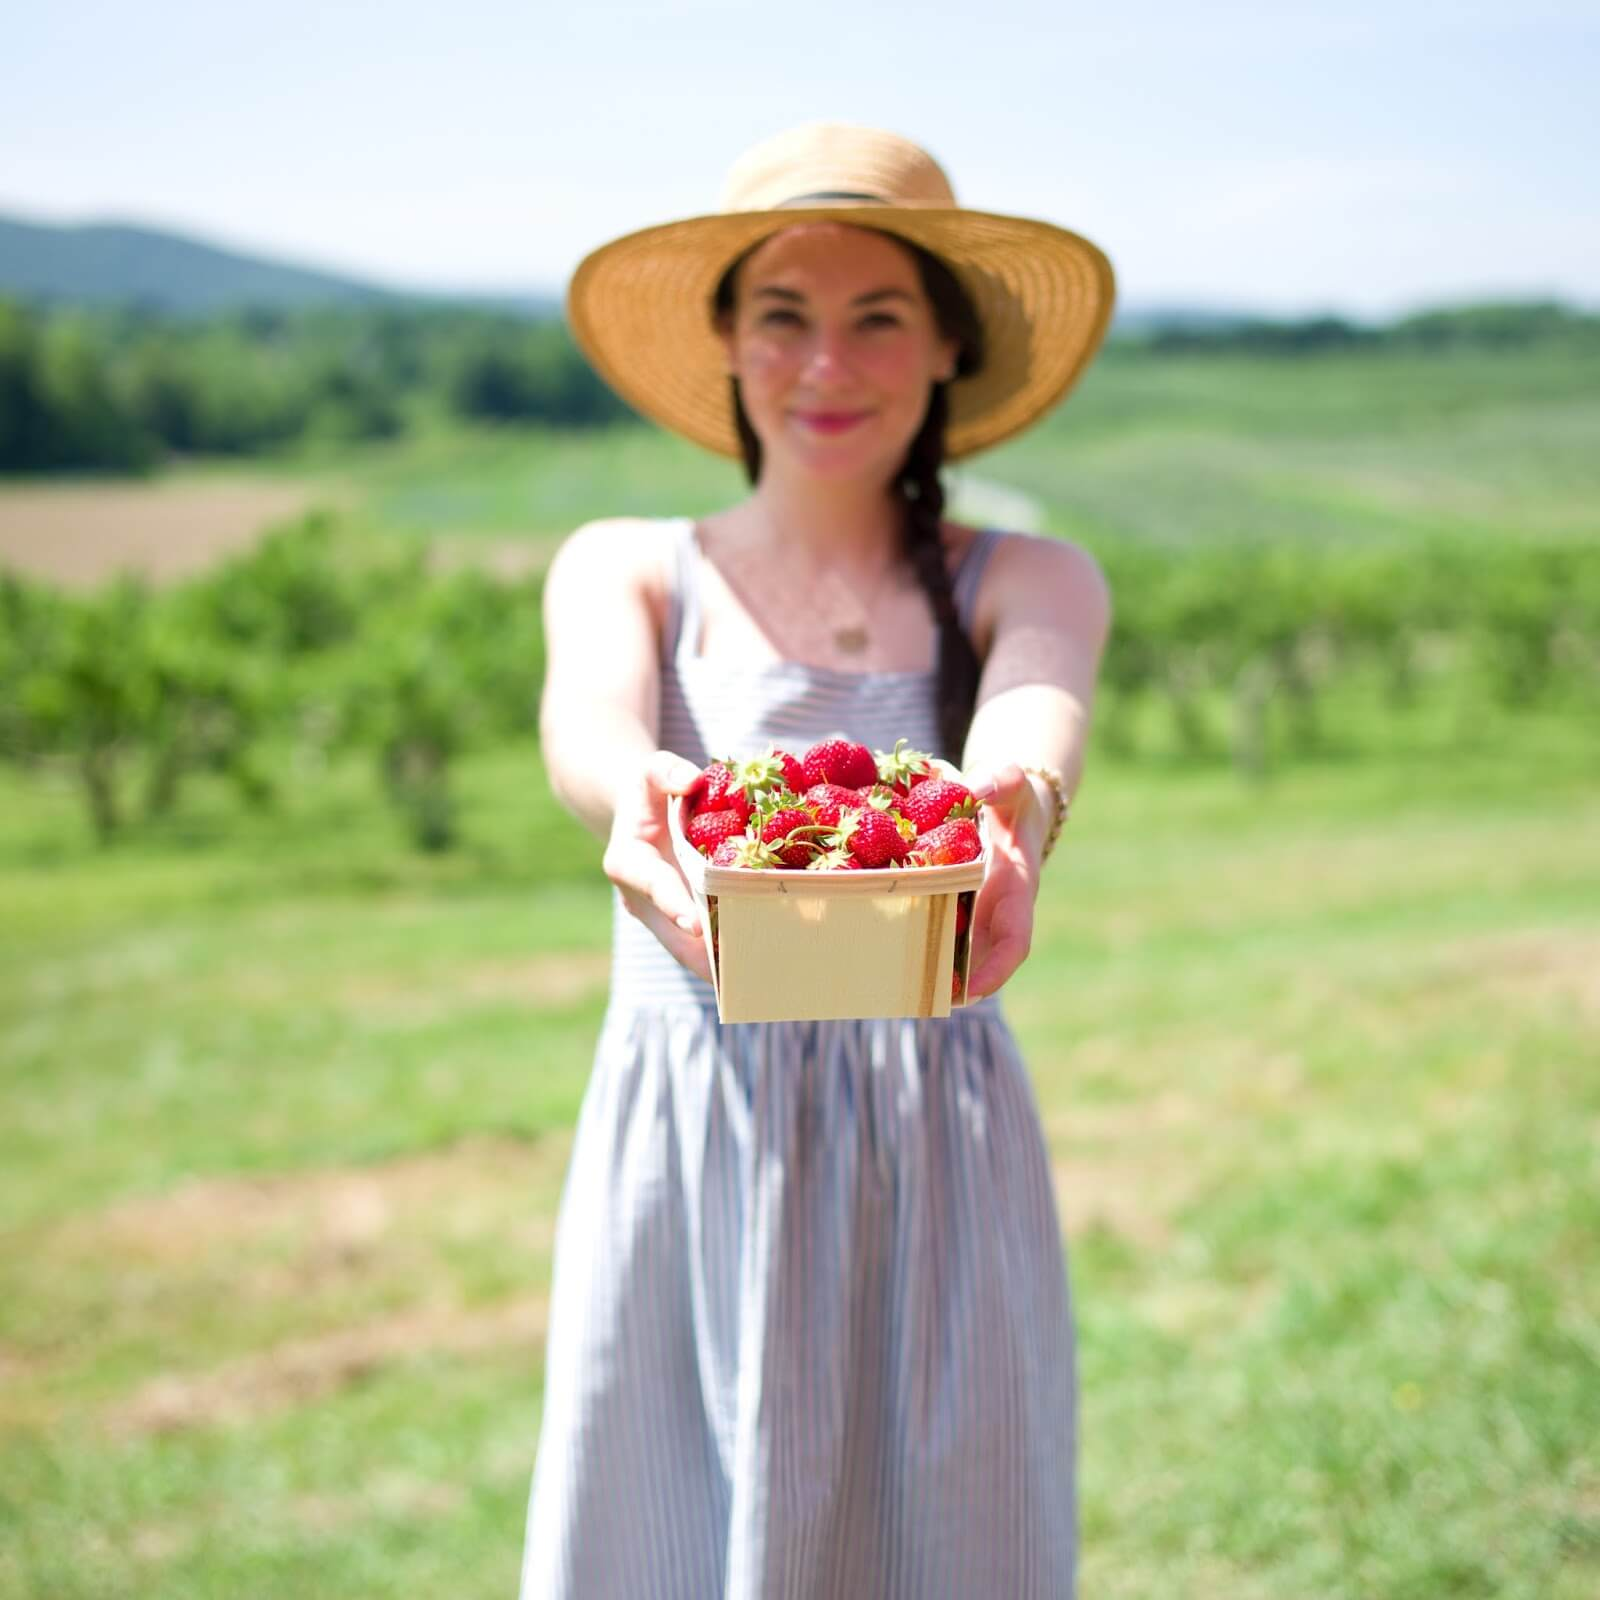 Curiosities Insider Interviews Carly A Heitlinger Fishkills Farms Strawberry Picking